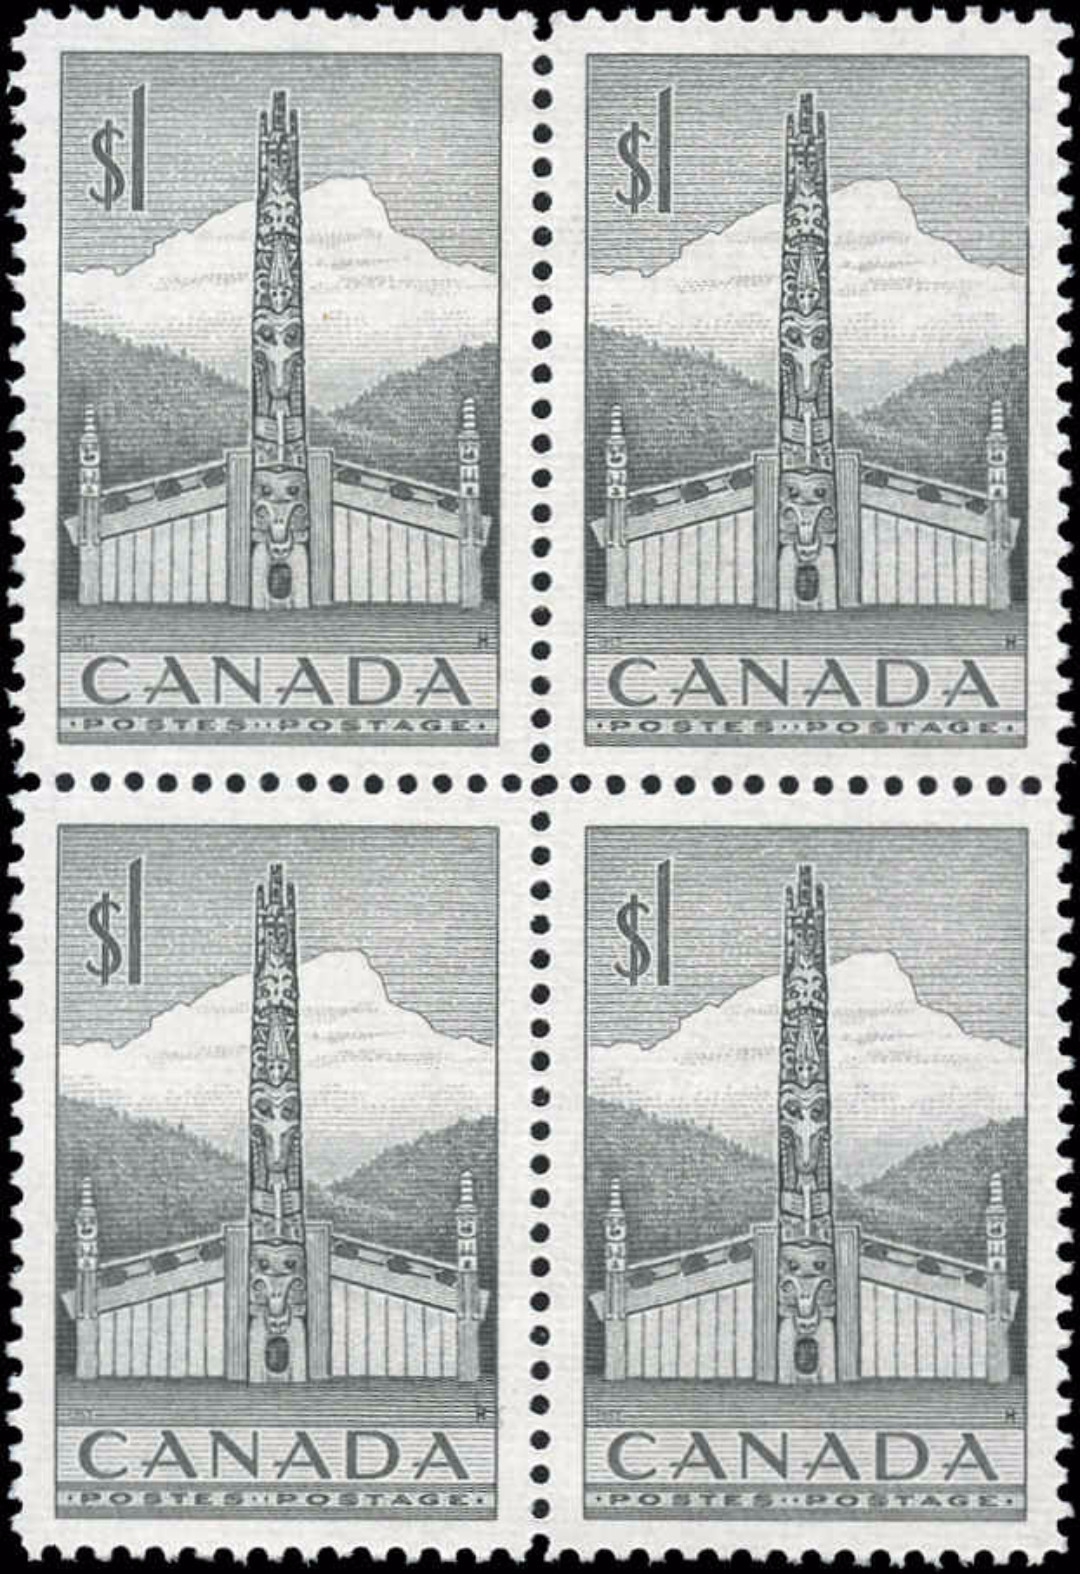 Canada #321, Totem Pole Issue, VF, MH